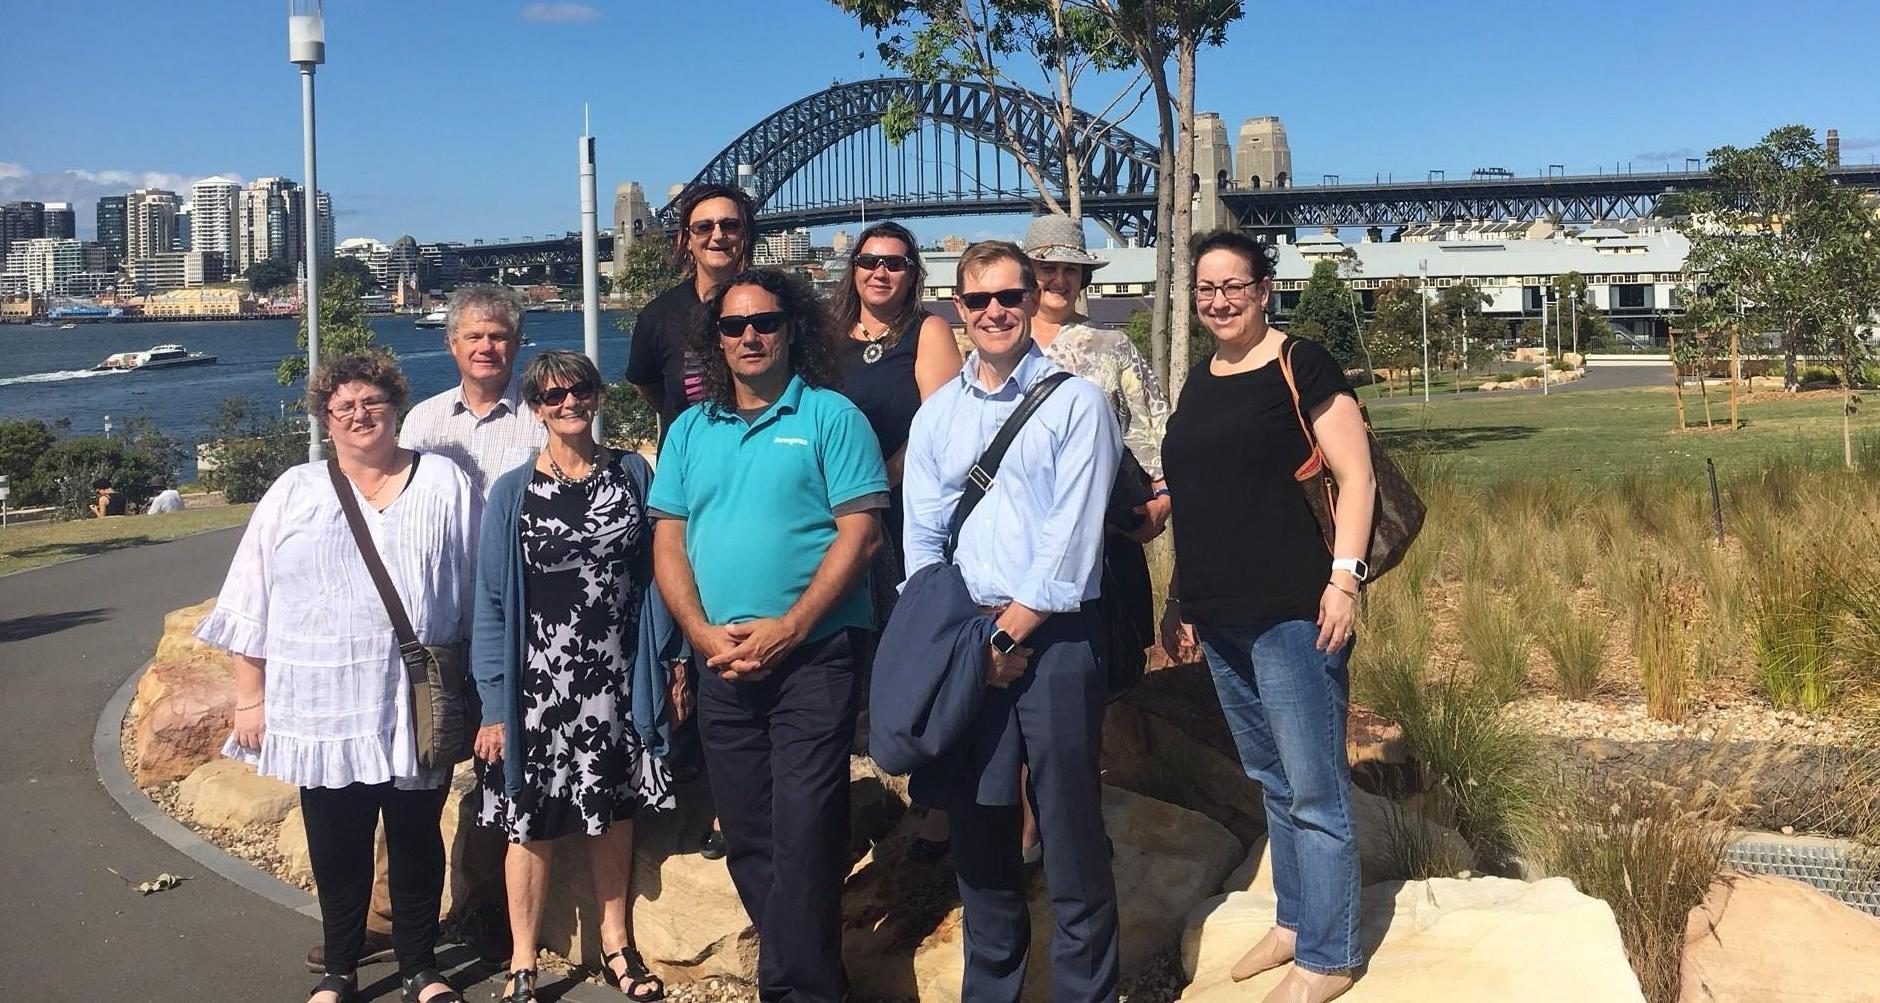 The Board at Barangaroo. From L to R: Lisa Penrith, Bruce Brown, Anita Phillips, Karrina DeMasi, Celia Harnas, Clarence Slockee (from Barangaroo), Jill Humphreys, Paul Shinkfield and Renee Owen.